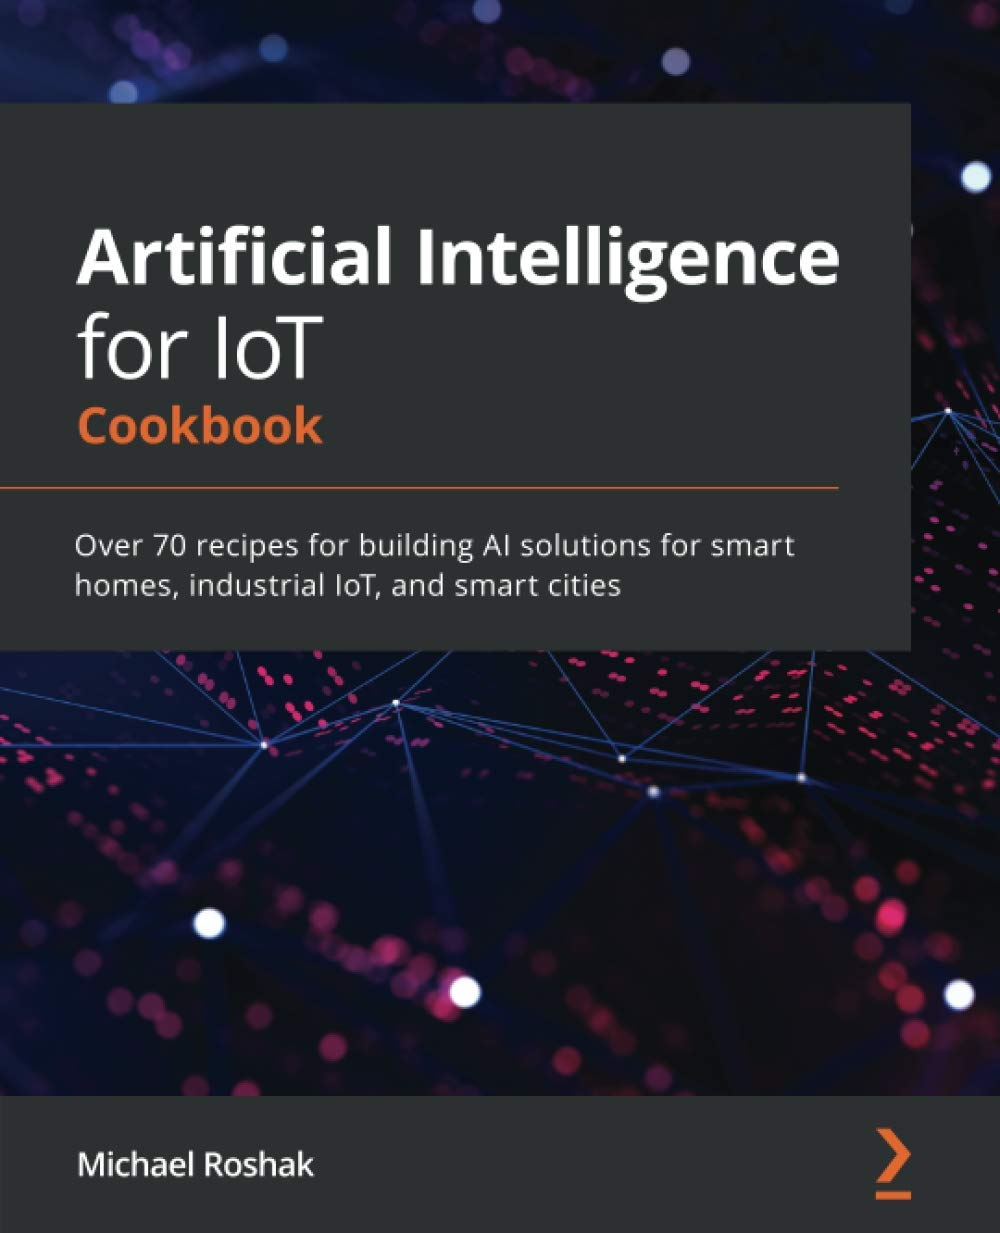 Artificial Intelligence for IoT Cookbook: Over 70 recipes for building AI solutions for smart homes, industrial IoT, and smart cities